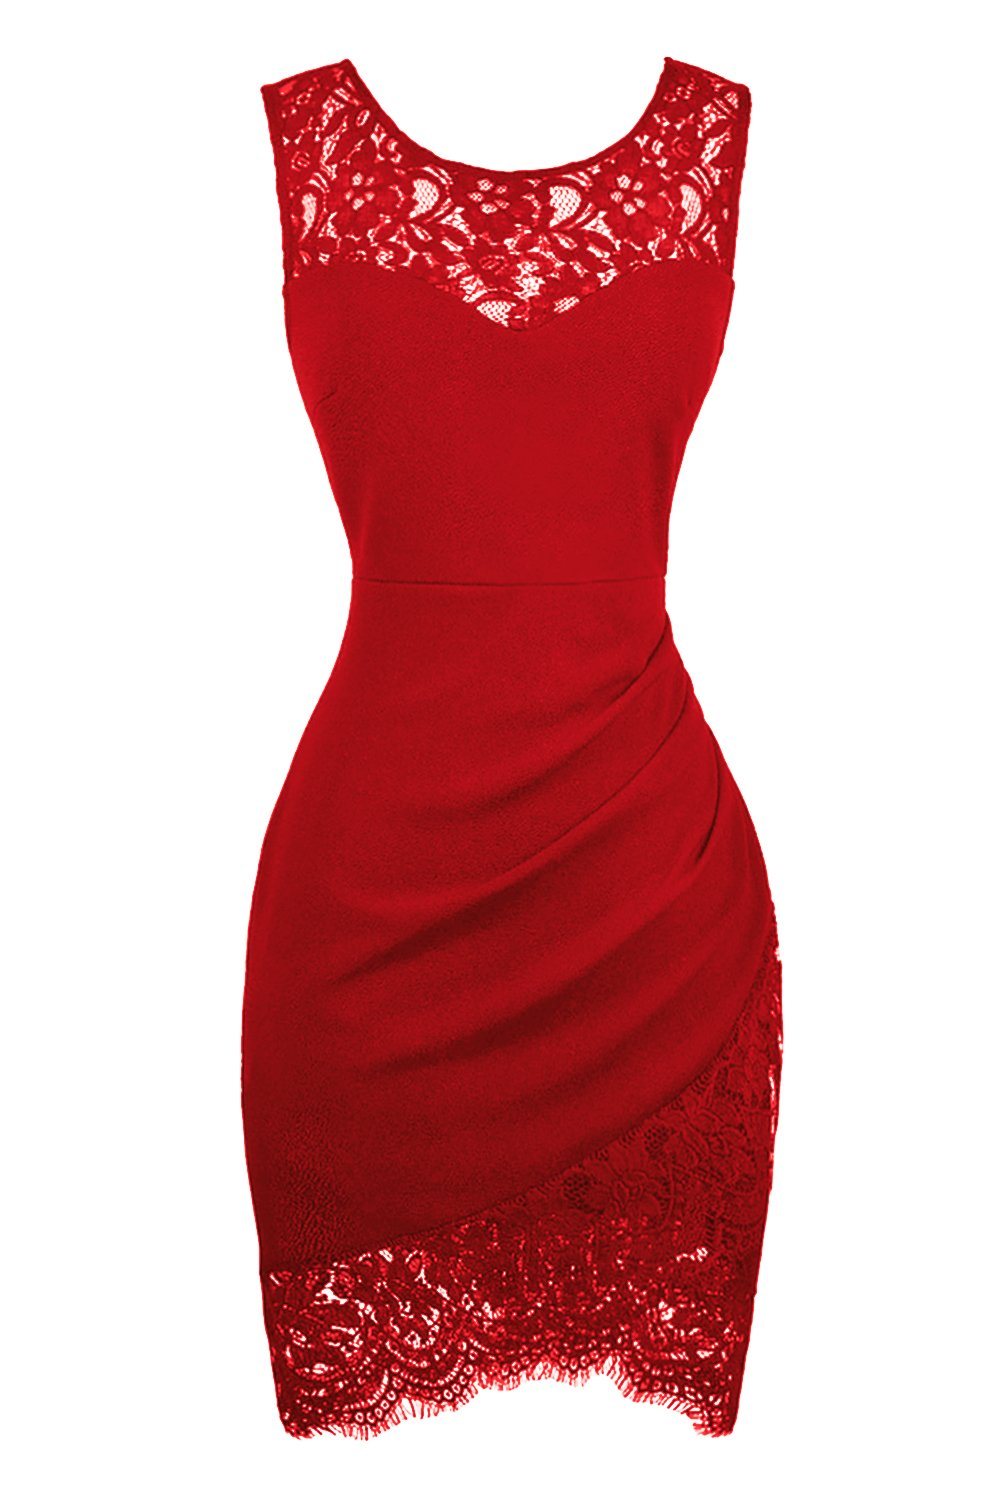 Swiland Women Sleeveless Lace Floral Round Neck Vintage Retro Cocktail Swing Red Dress